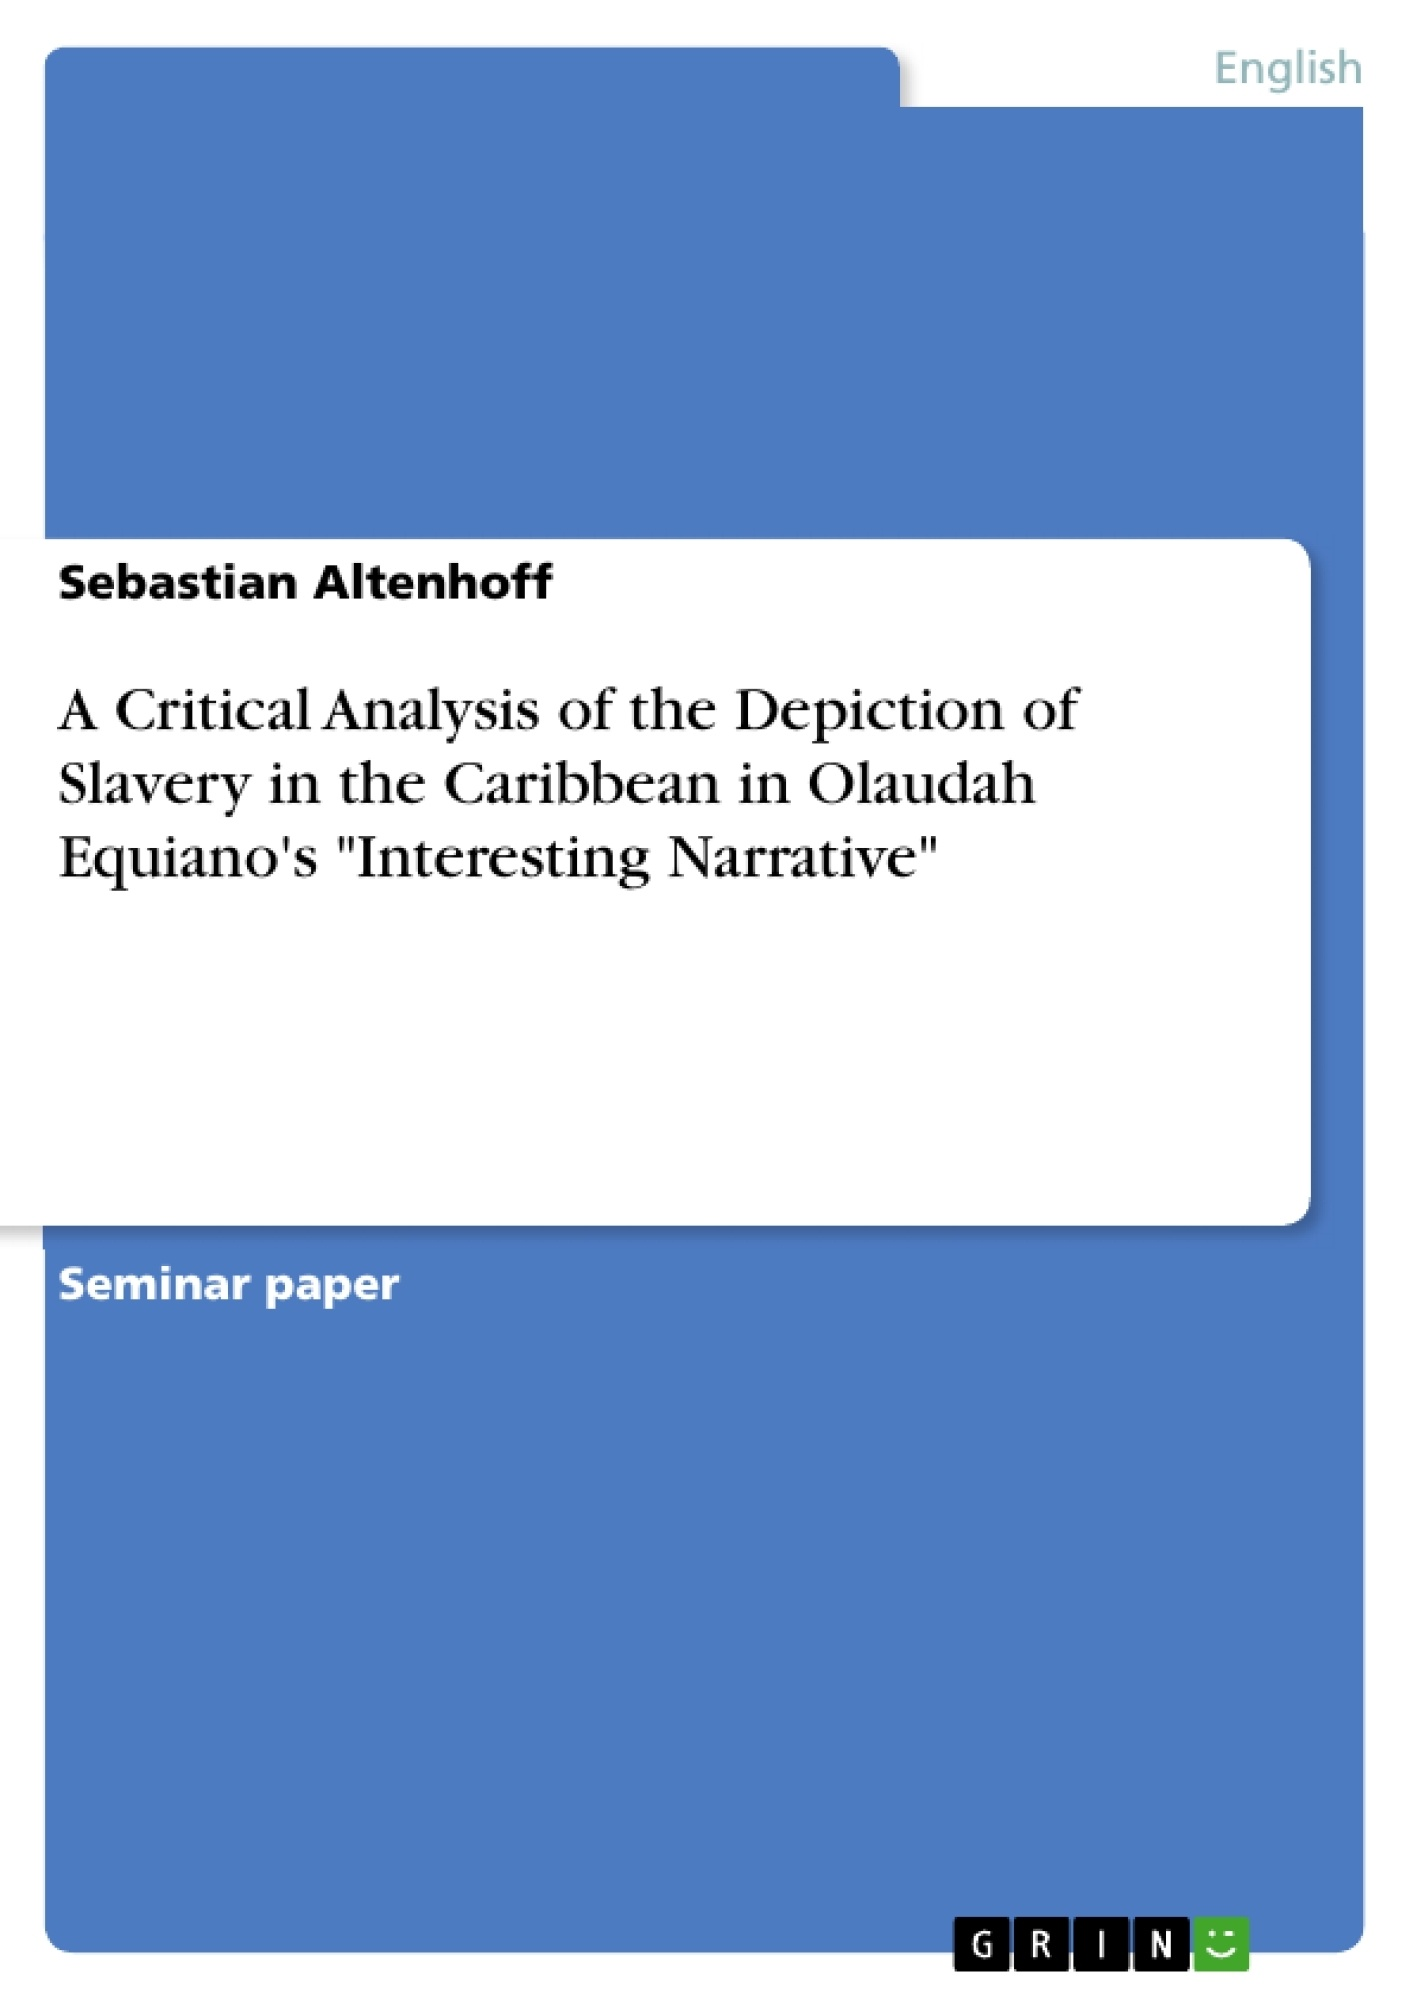 a critical analysis of the depiction of slavery in the caribbean  upload your own papers earn money and win an iphone x